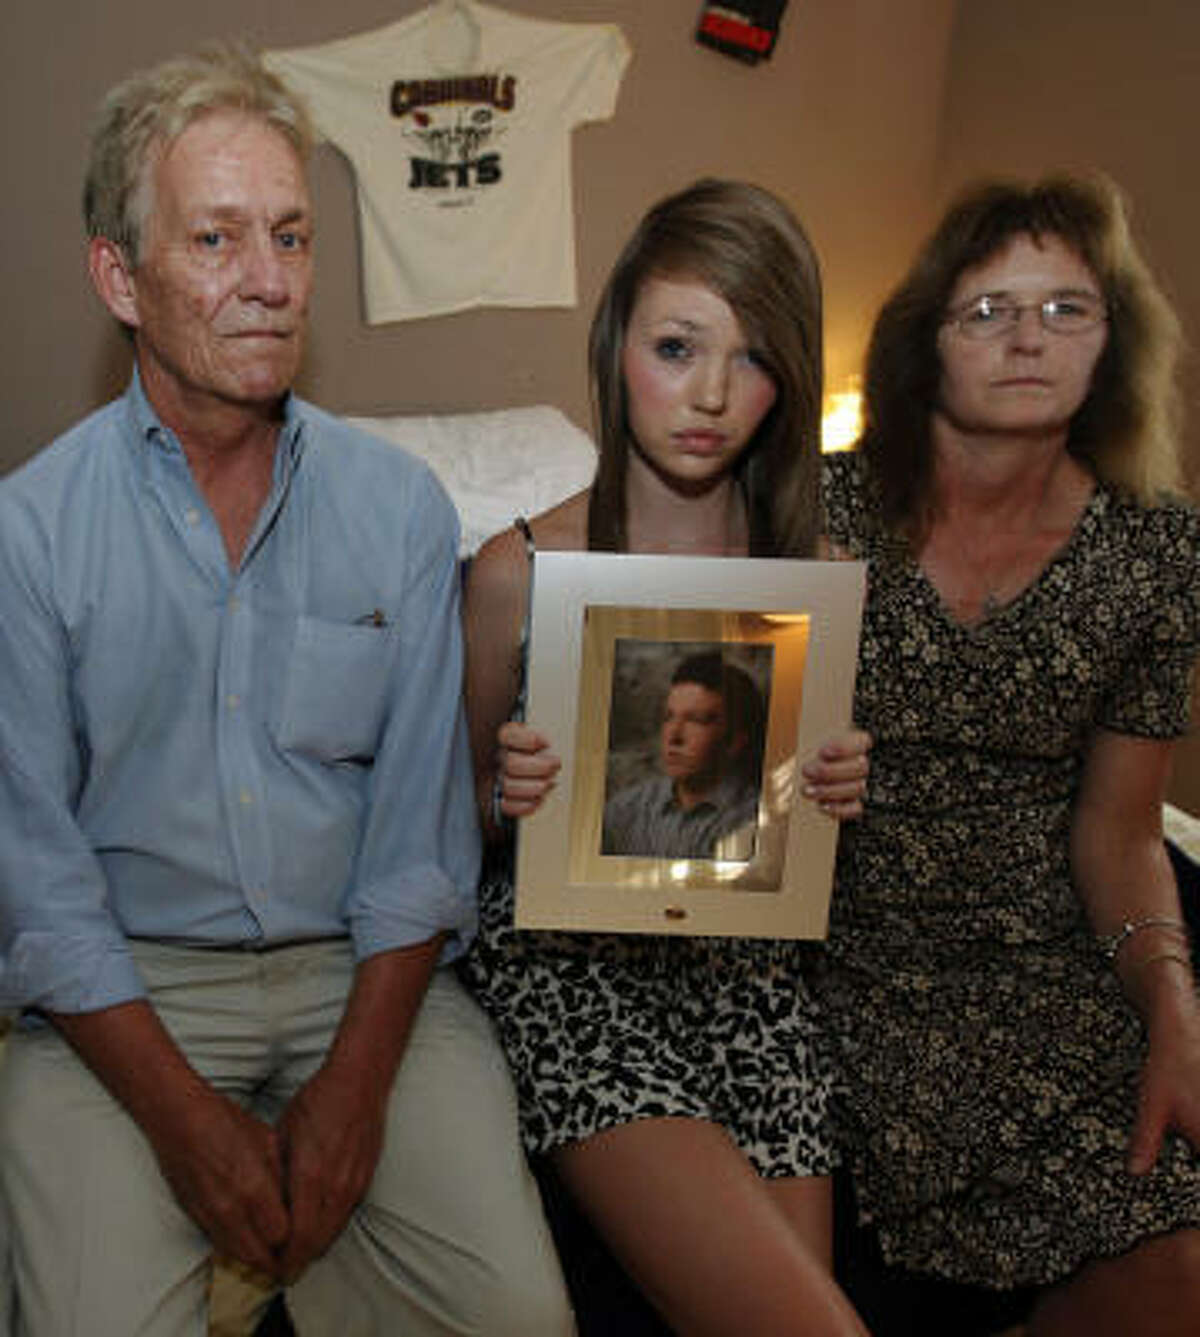 The family of James Peterson - his sister Margaret, center, with parents, Tim and Bonnie - left the photos and mementos in his room after the teen died in a wreck in 2009.